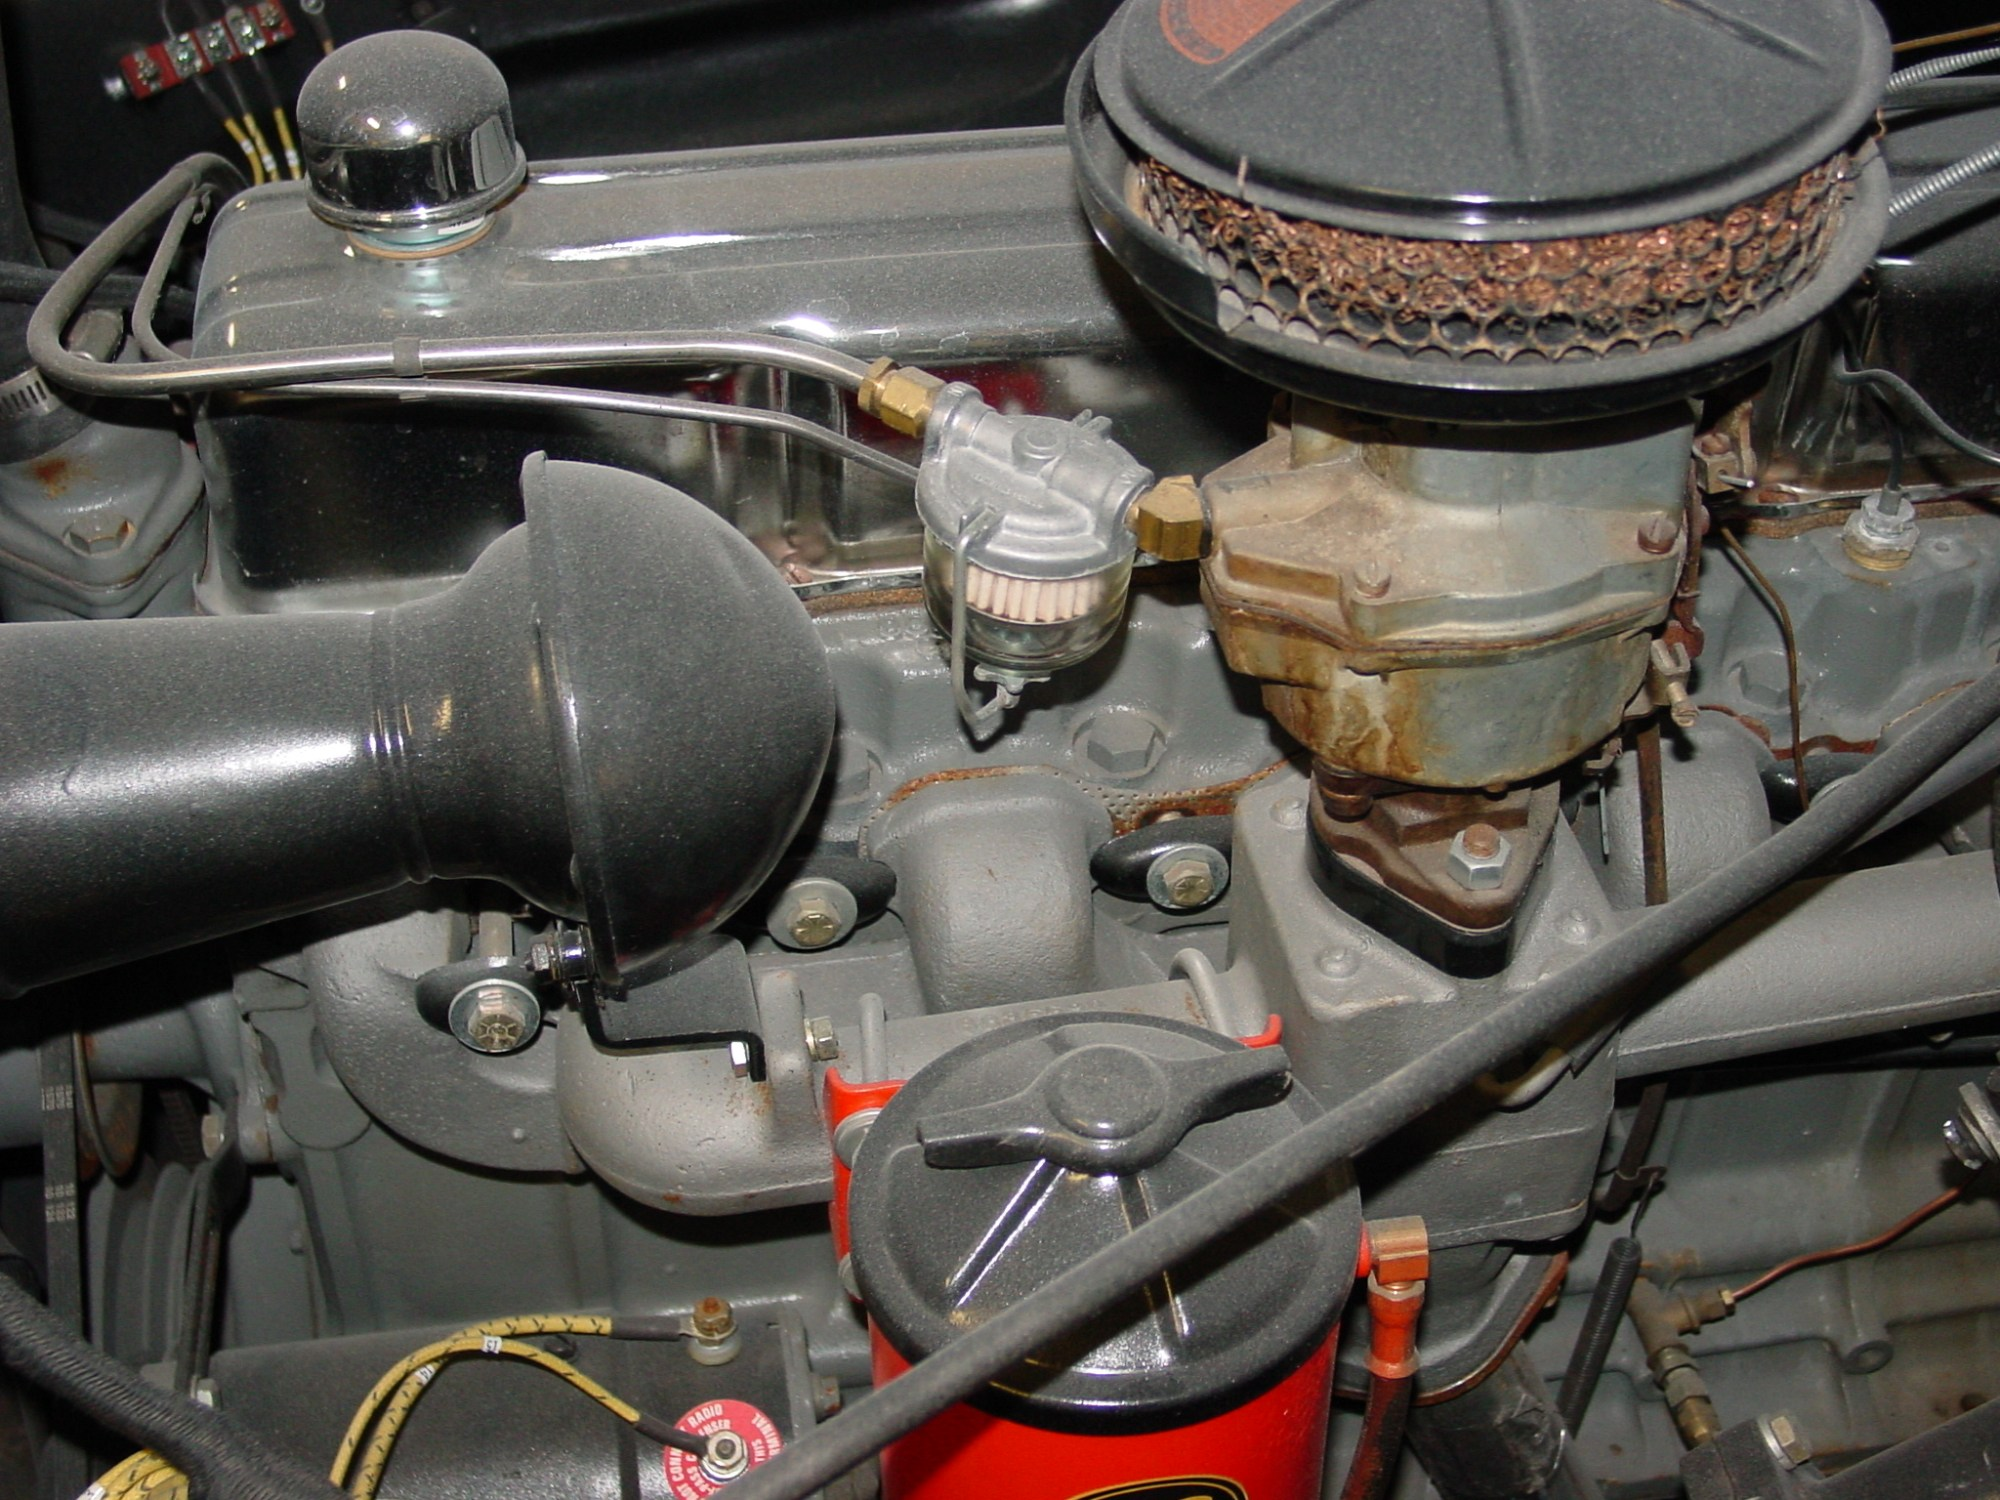 hight resolution of do you have pictures or some information that would add to this conversation send pics advance design fuel filter placement